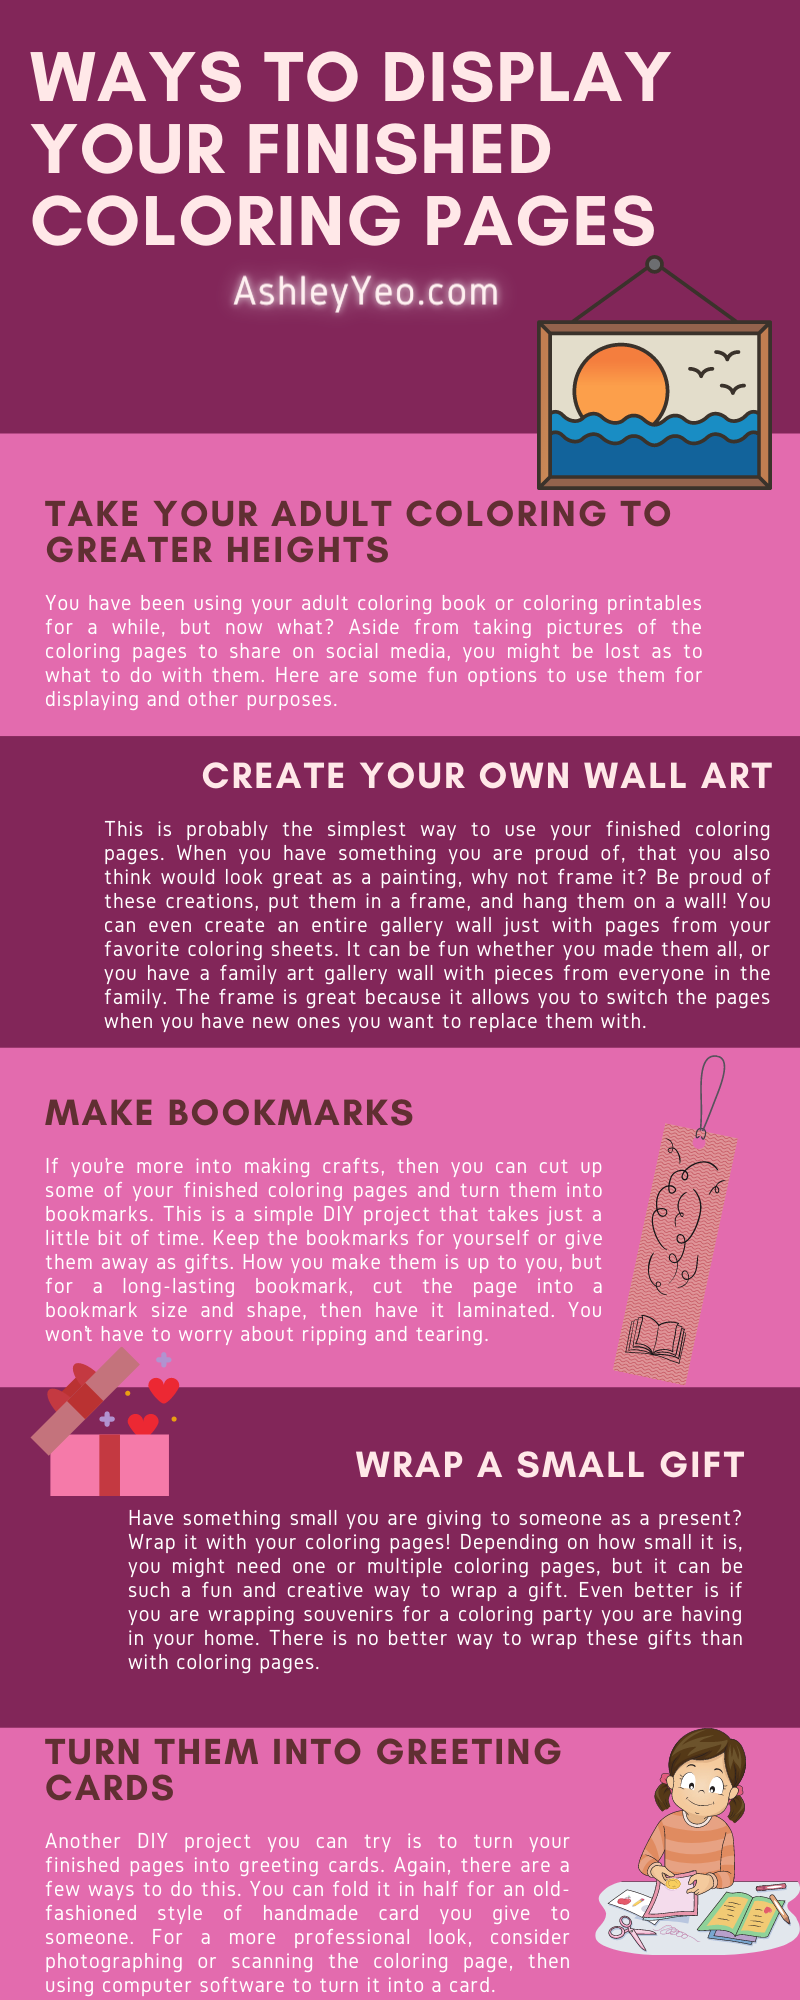 Ways to Display Your Finished Coloring Pages Infographic